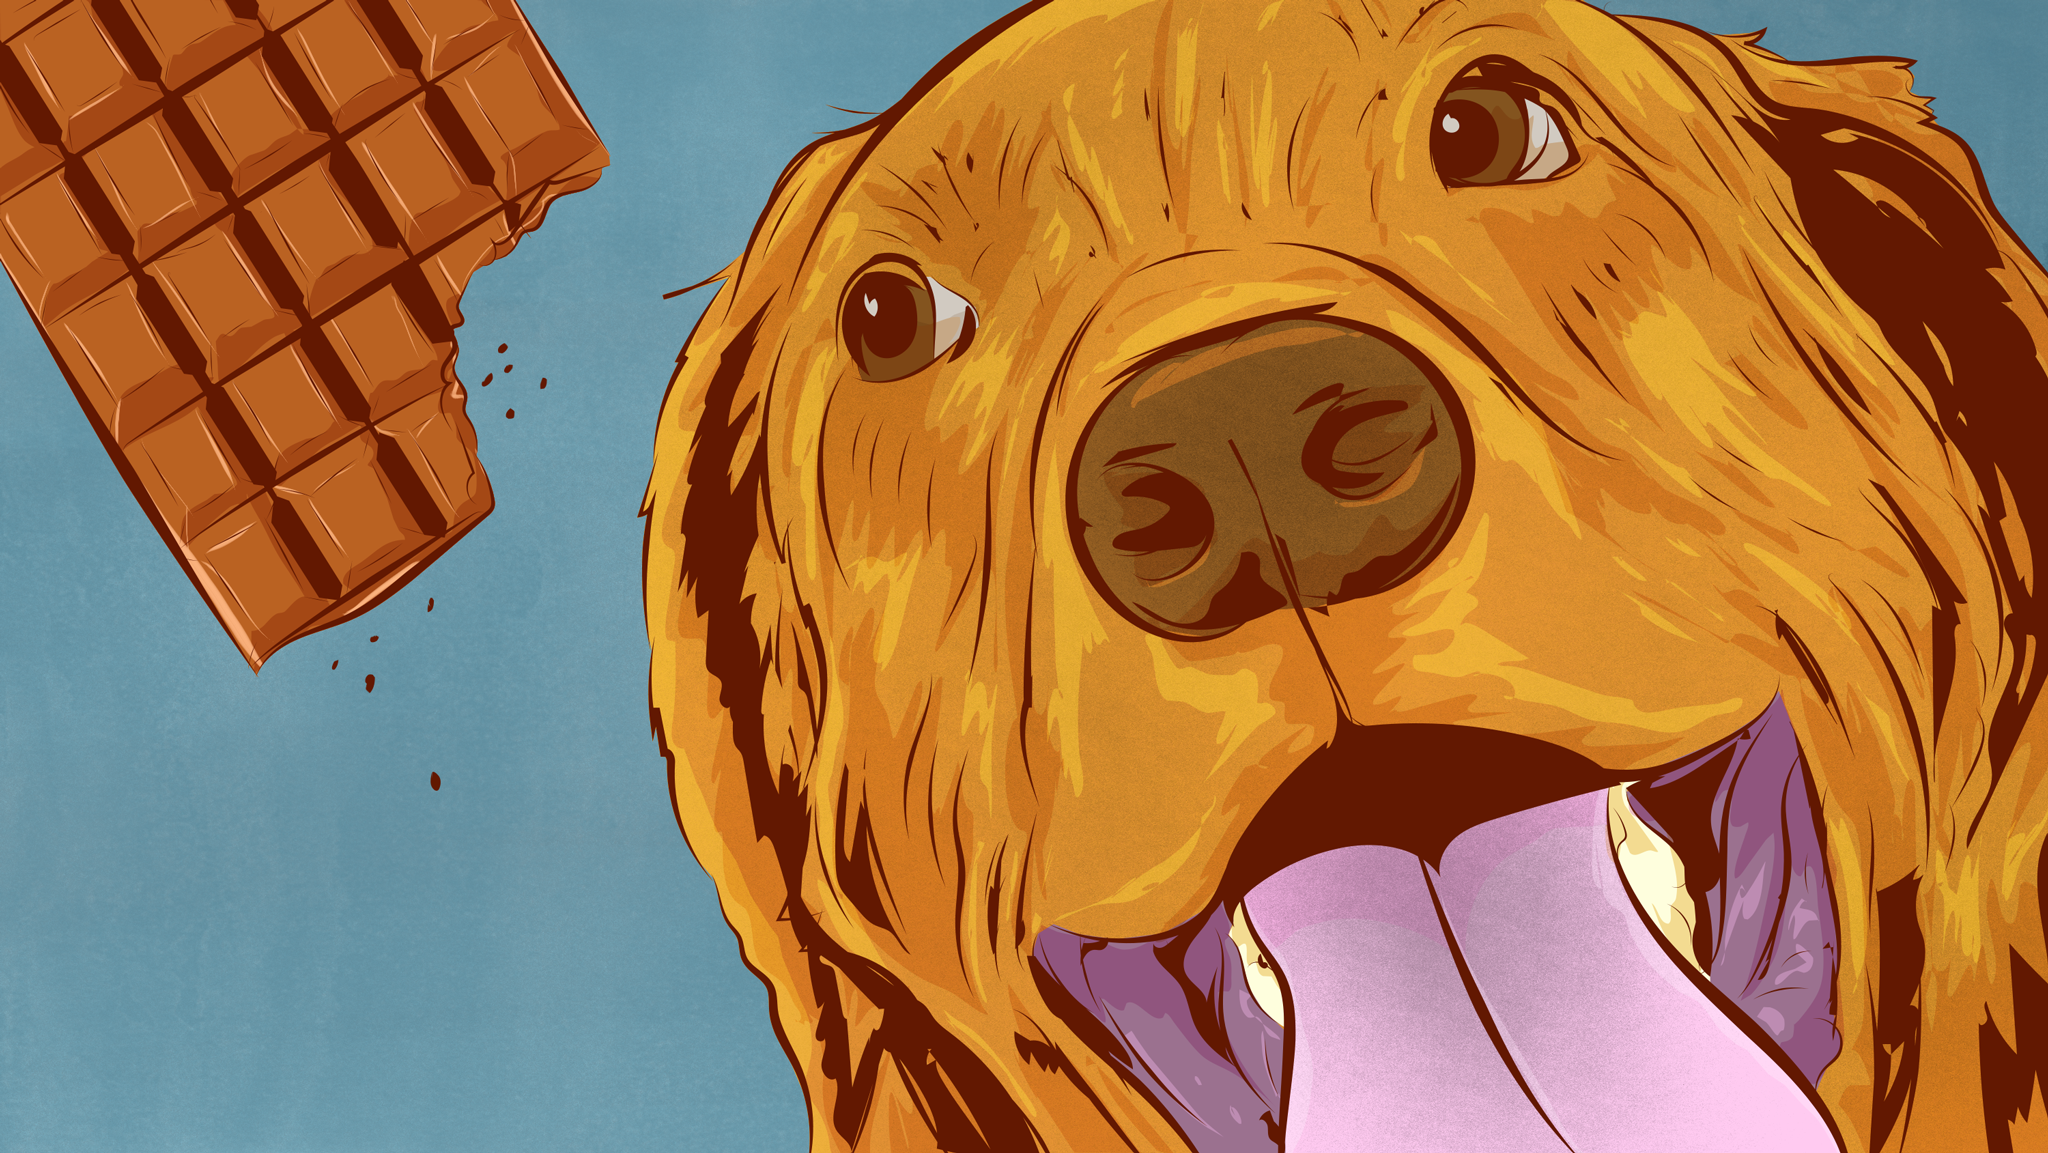 5 Foods You Should Never Feed To Dogs